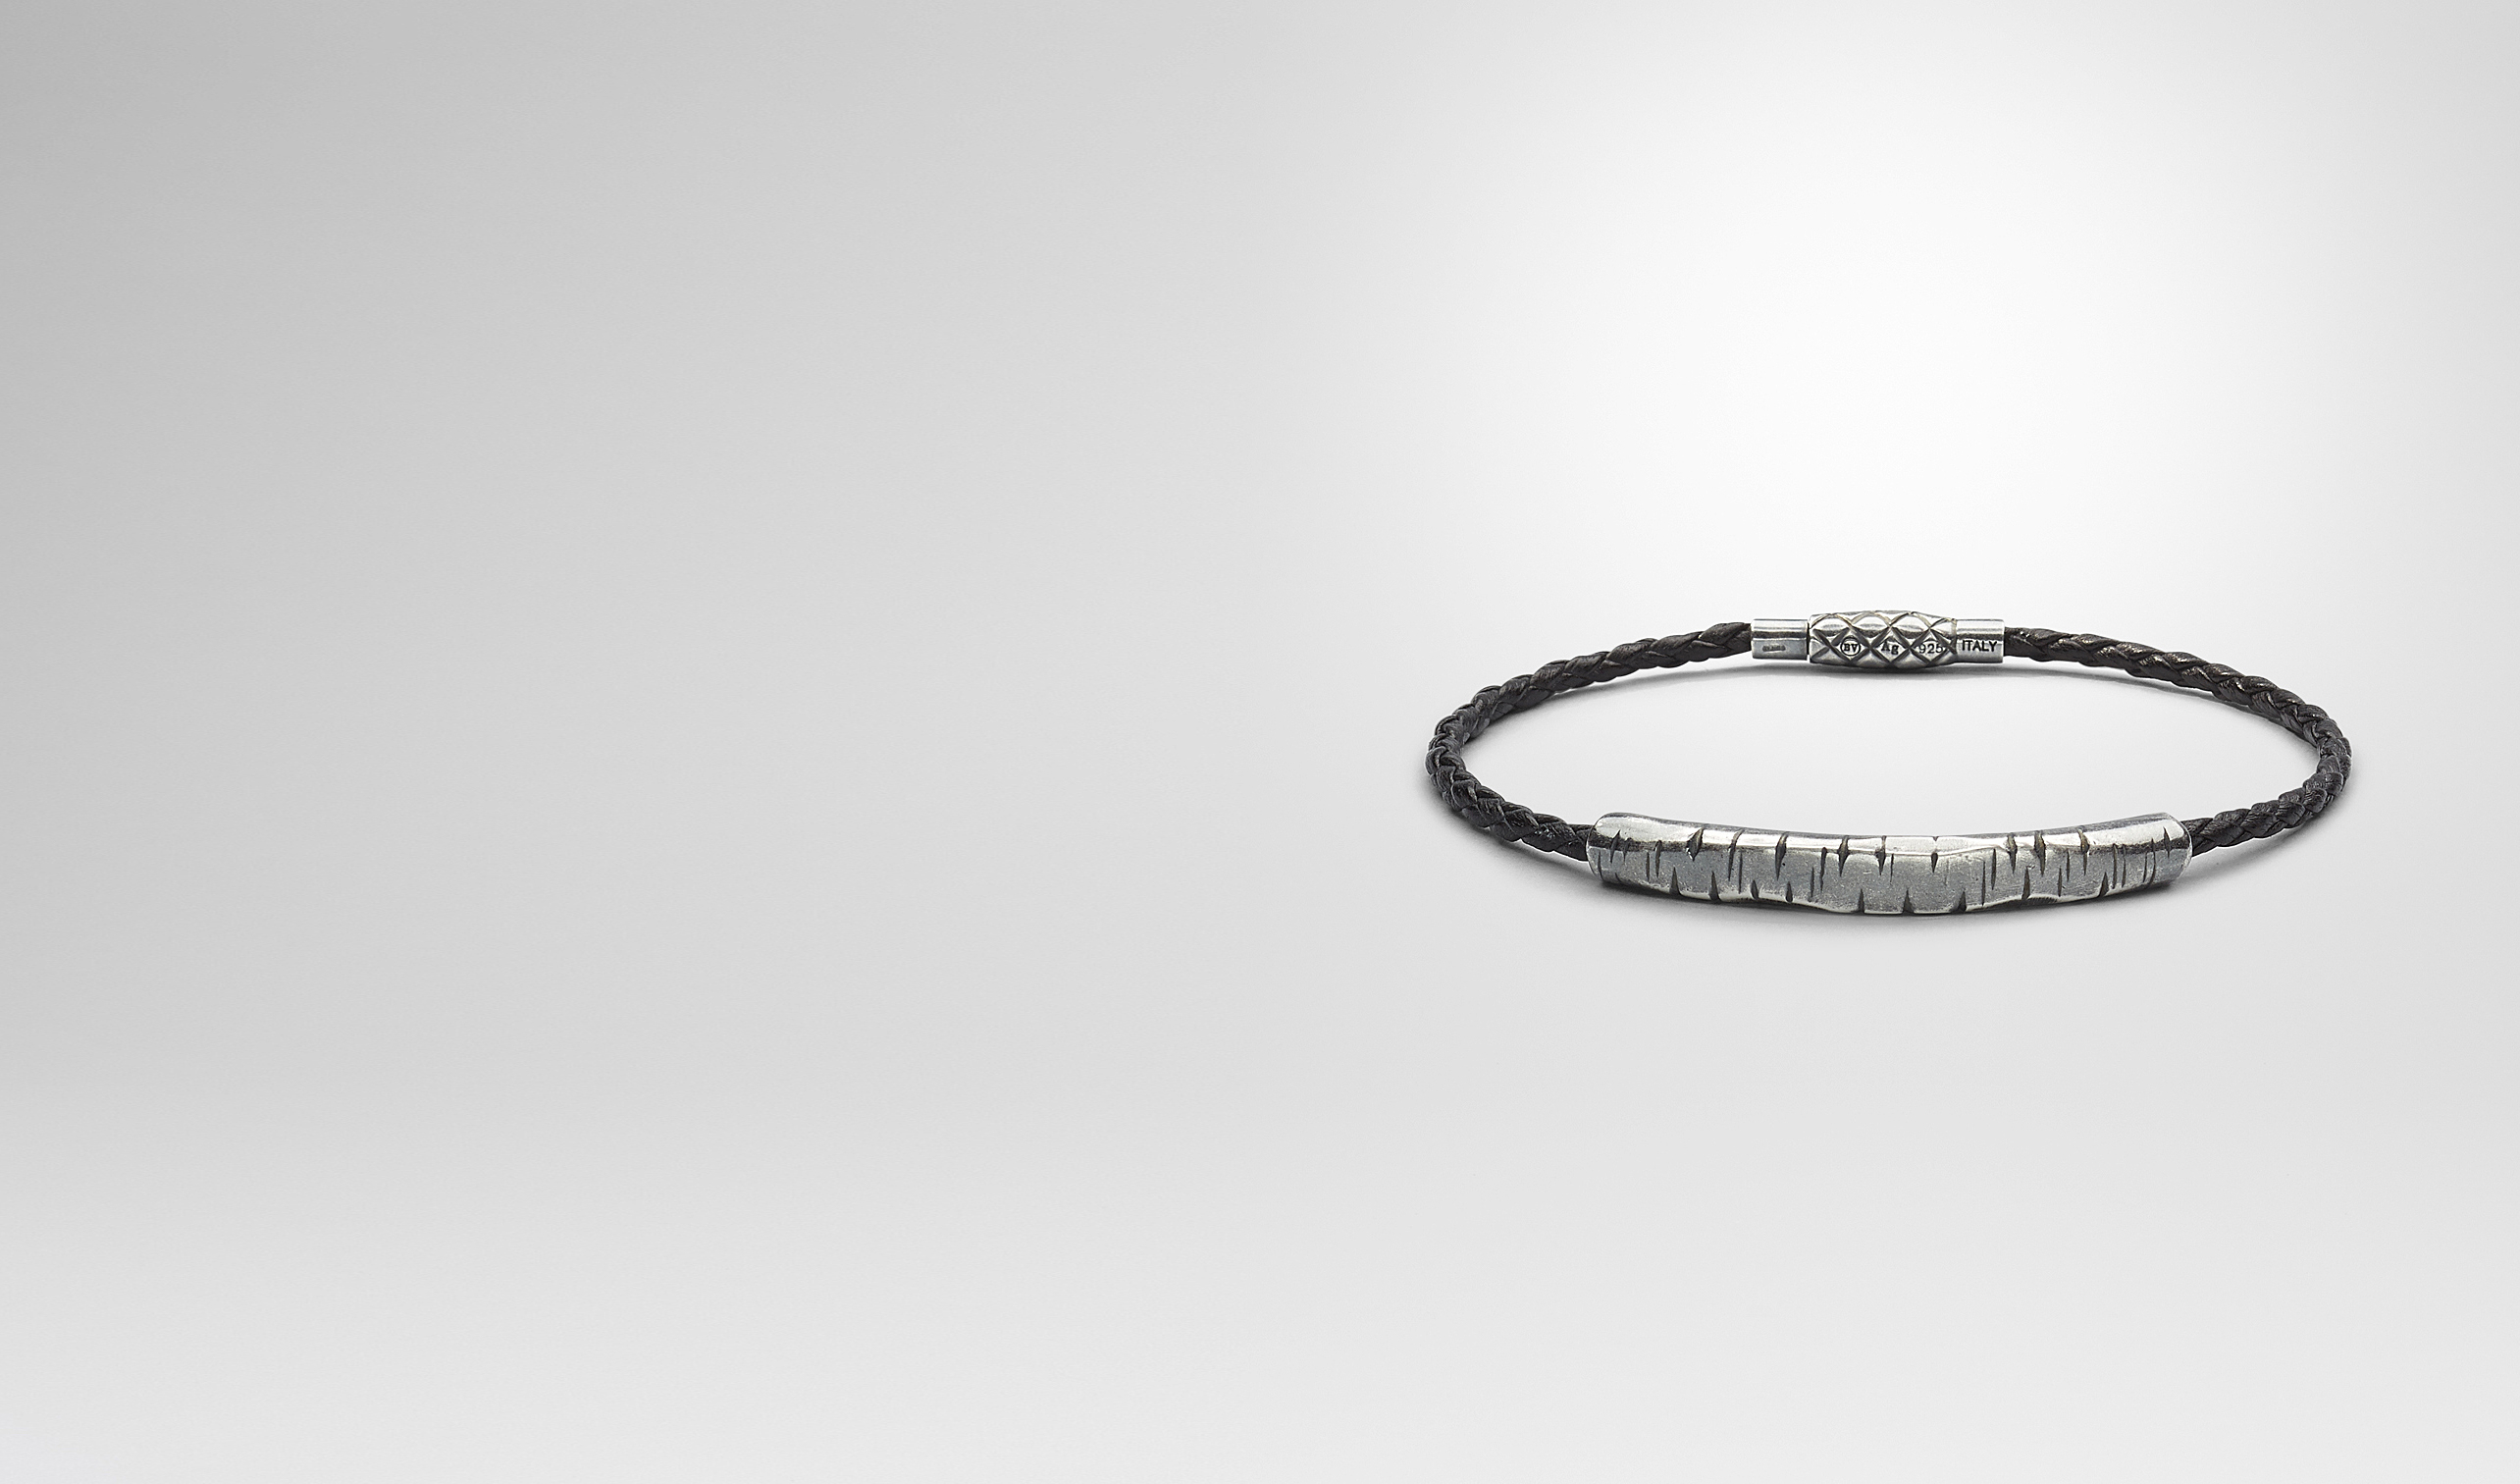 BOTTEGA VENETA Bracelet U BRACELET IN NERO INTRECCIATO NAPPA AND SILVER pl